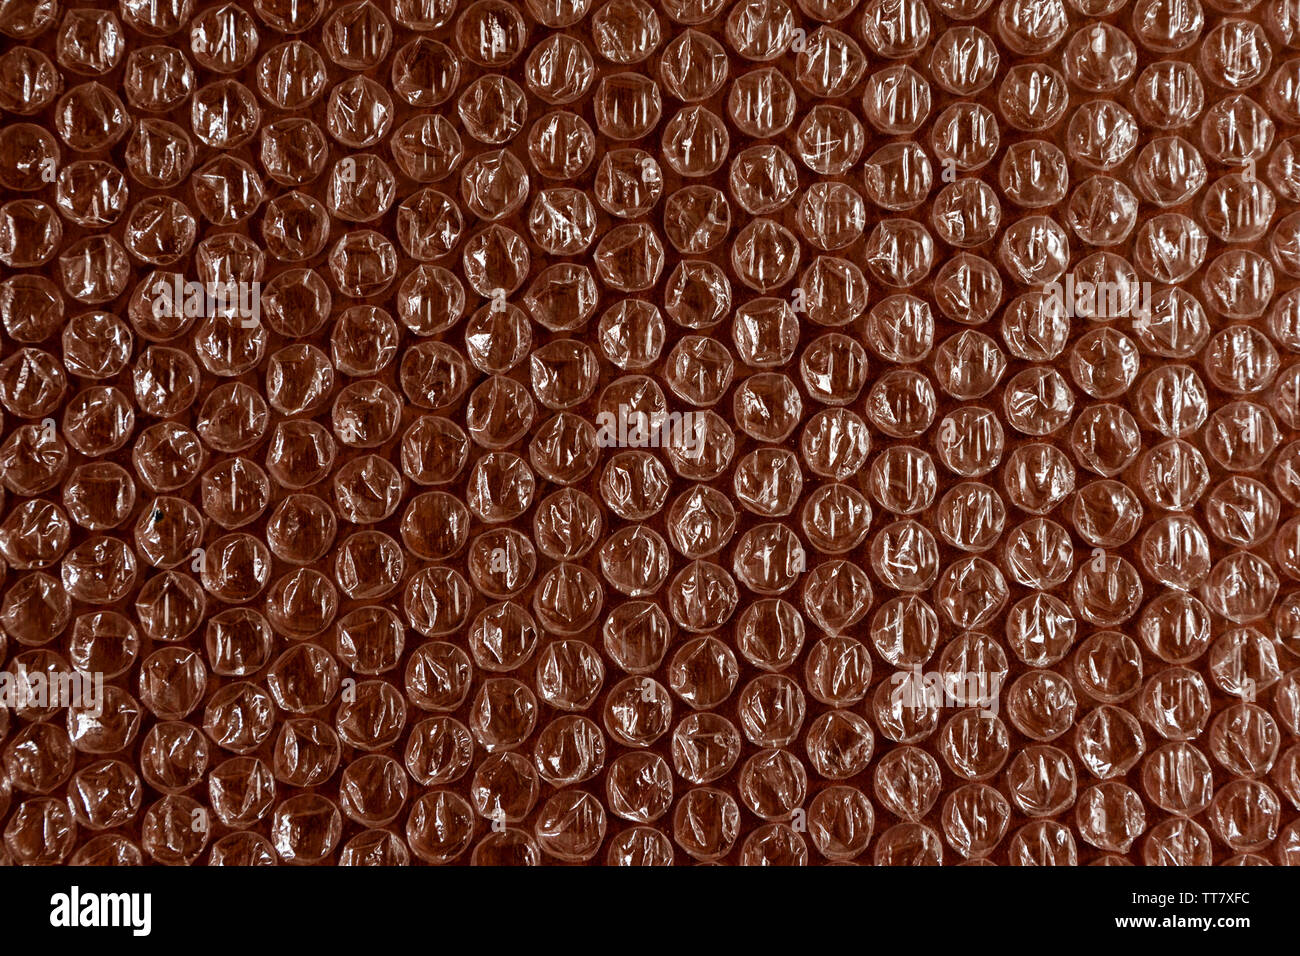 Cellophane and plastic background. The texture of old plastic's packing with balls. Image with effect brown and white tones. - Stock Image